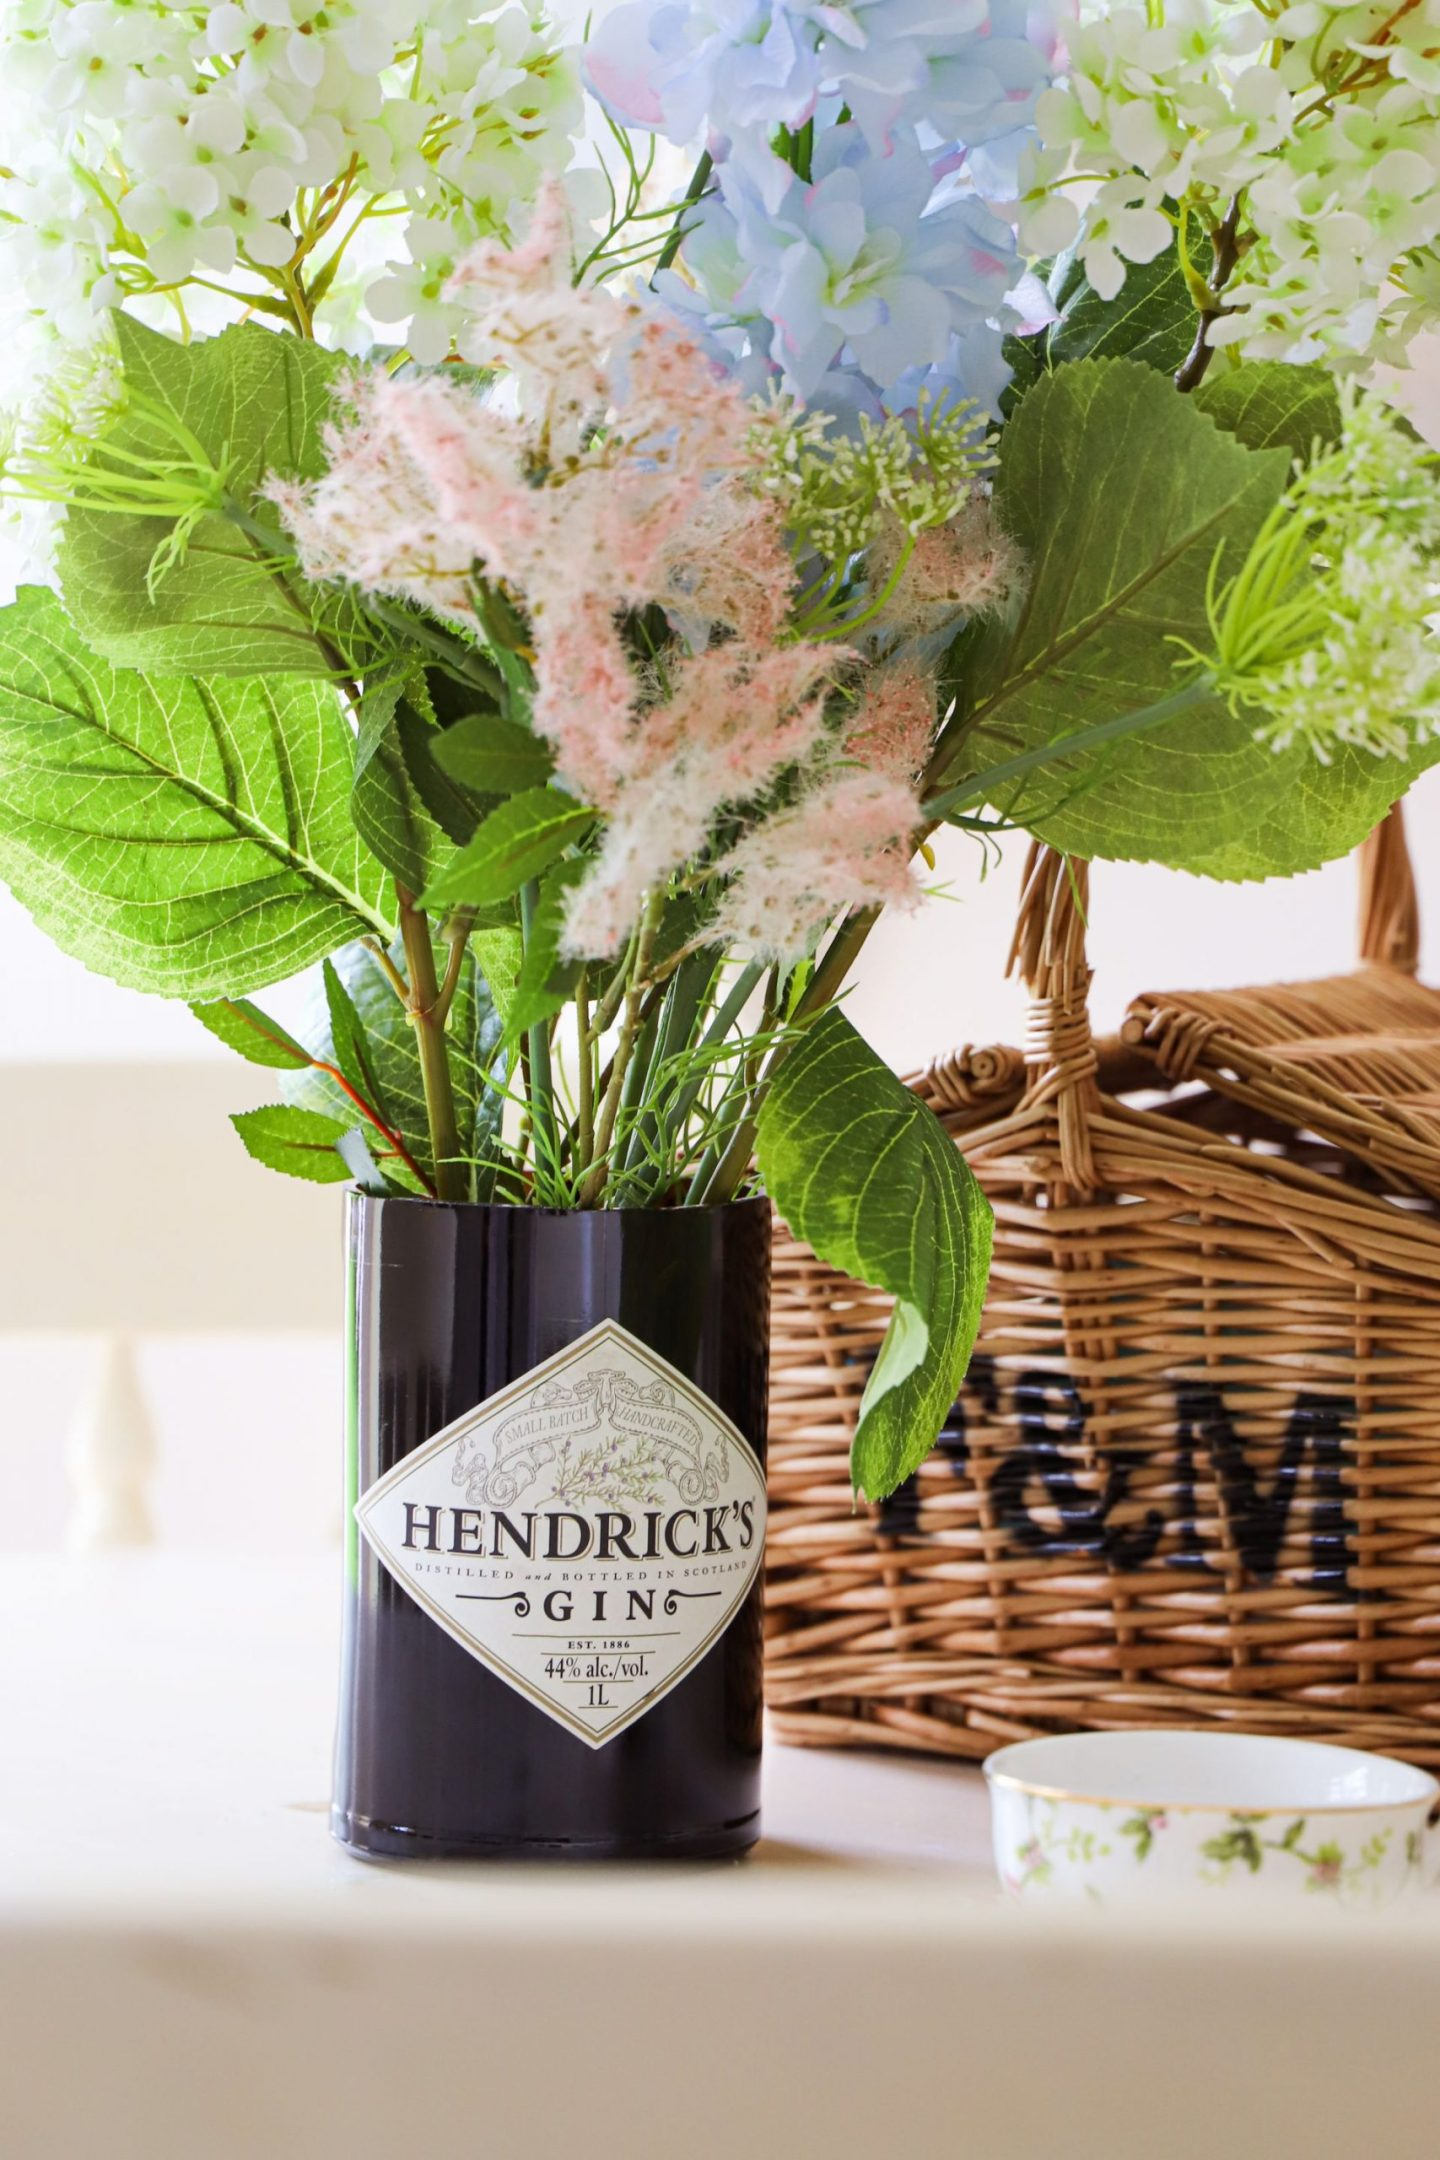 How to cut a glass hendricks bottle